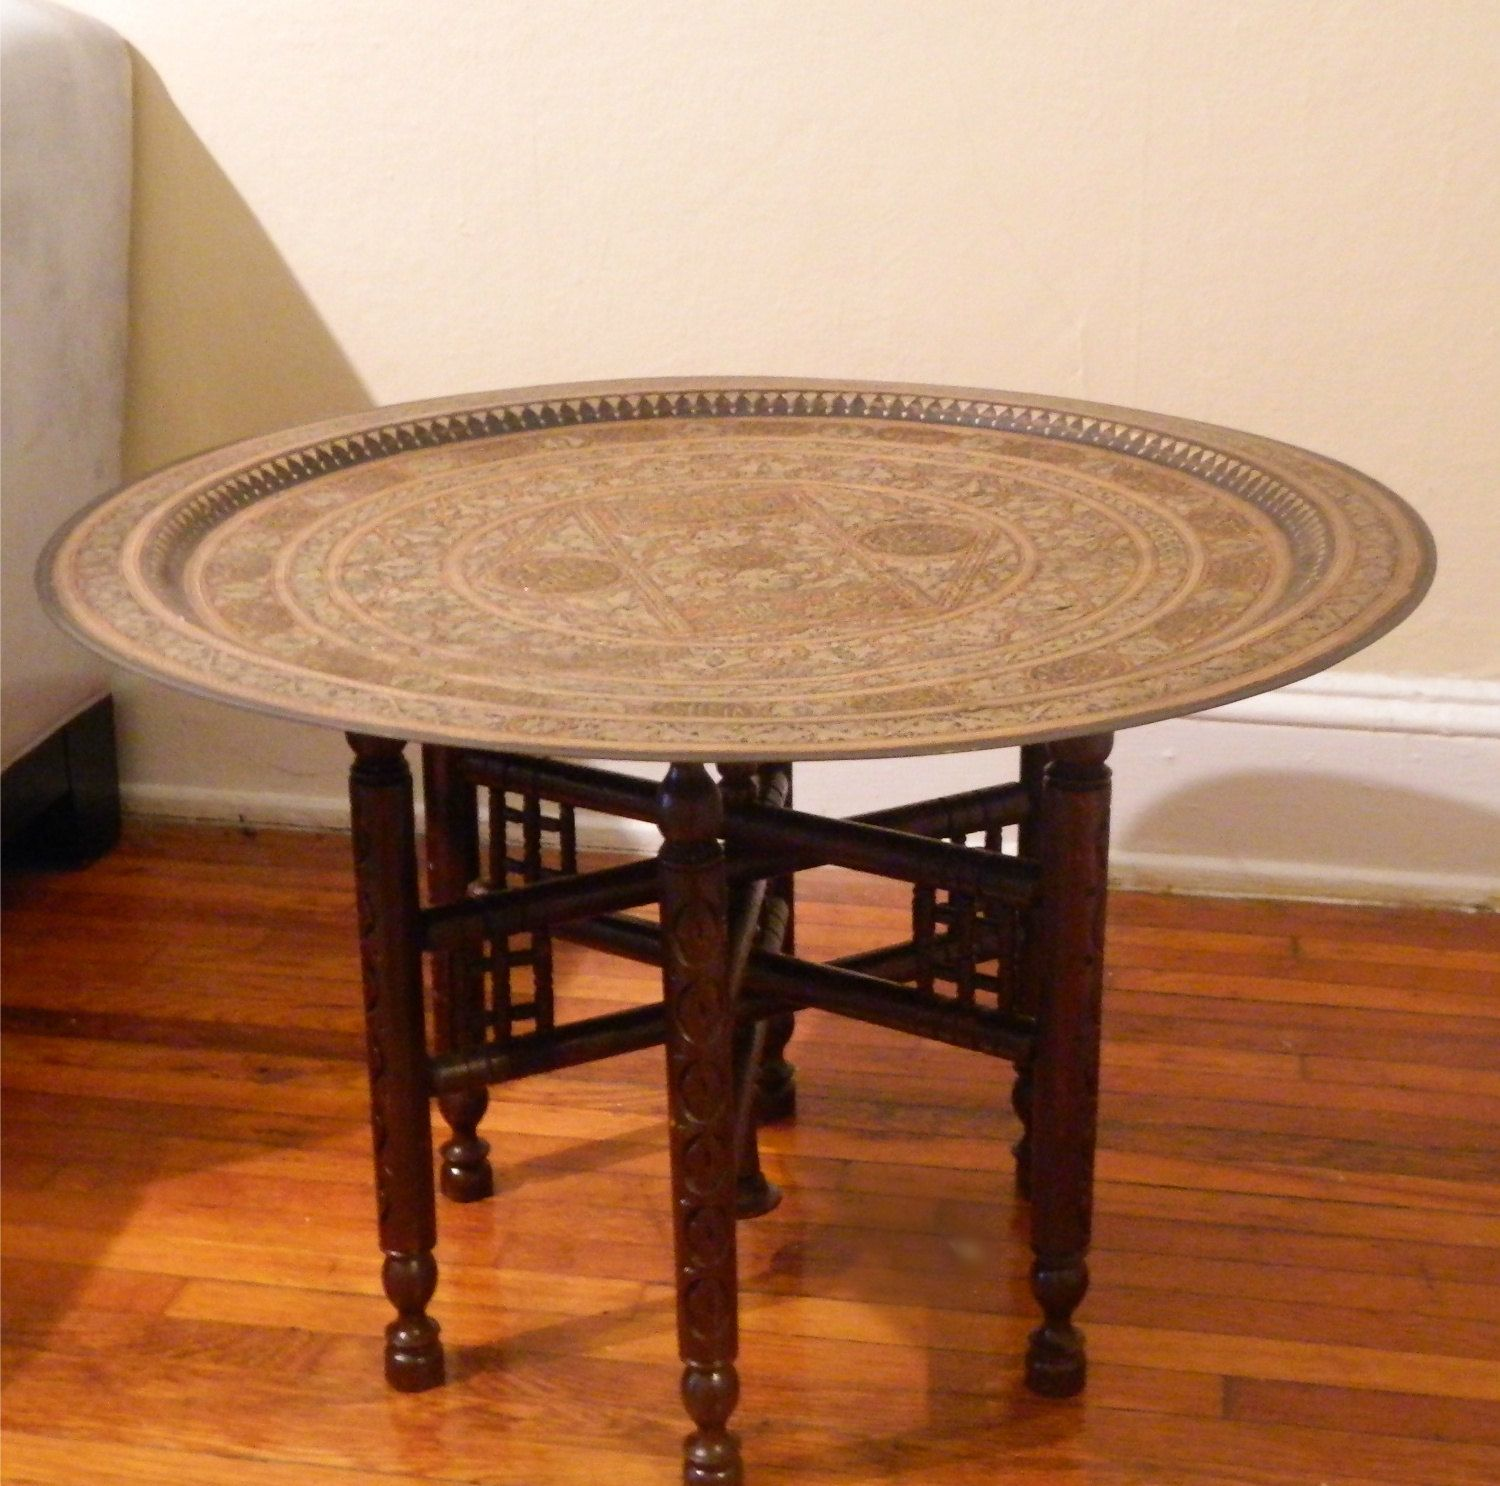 Round Moroccan Hammered Brass Tray Table. $300.00, Via Etsy.